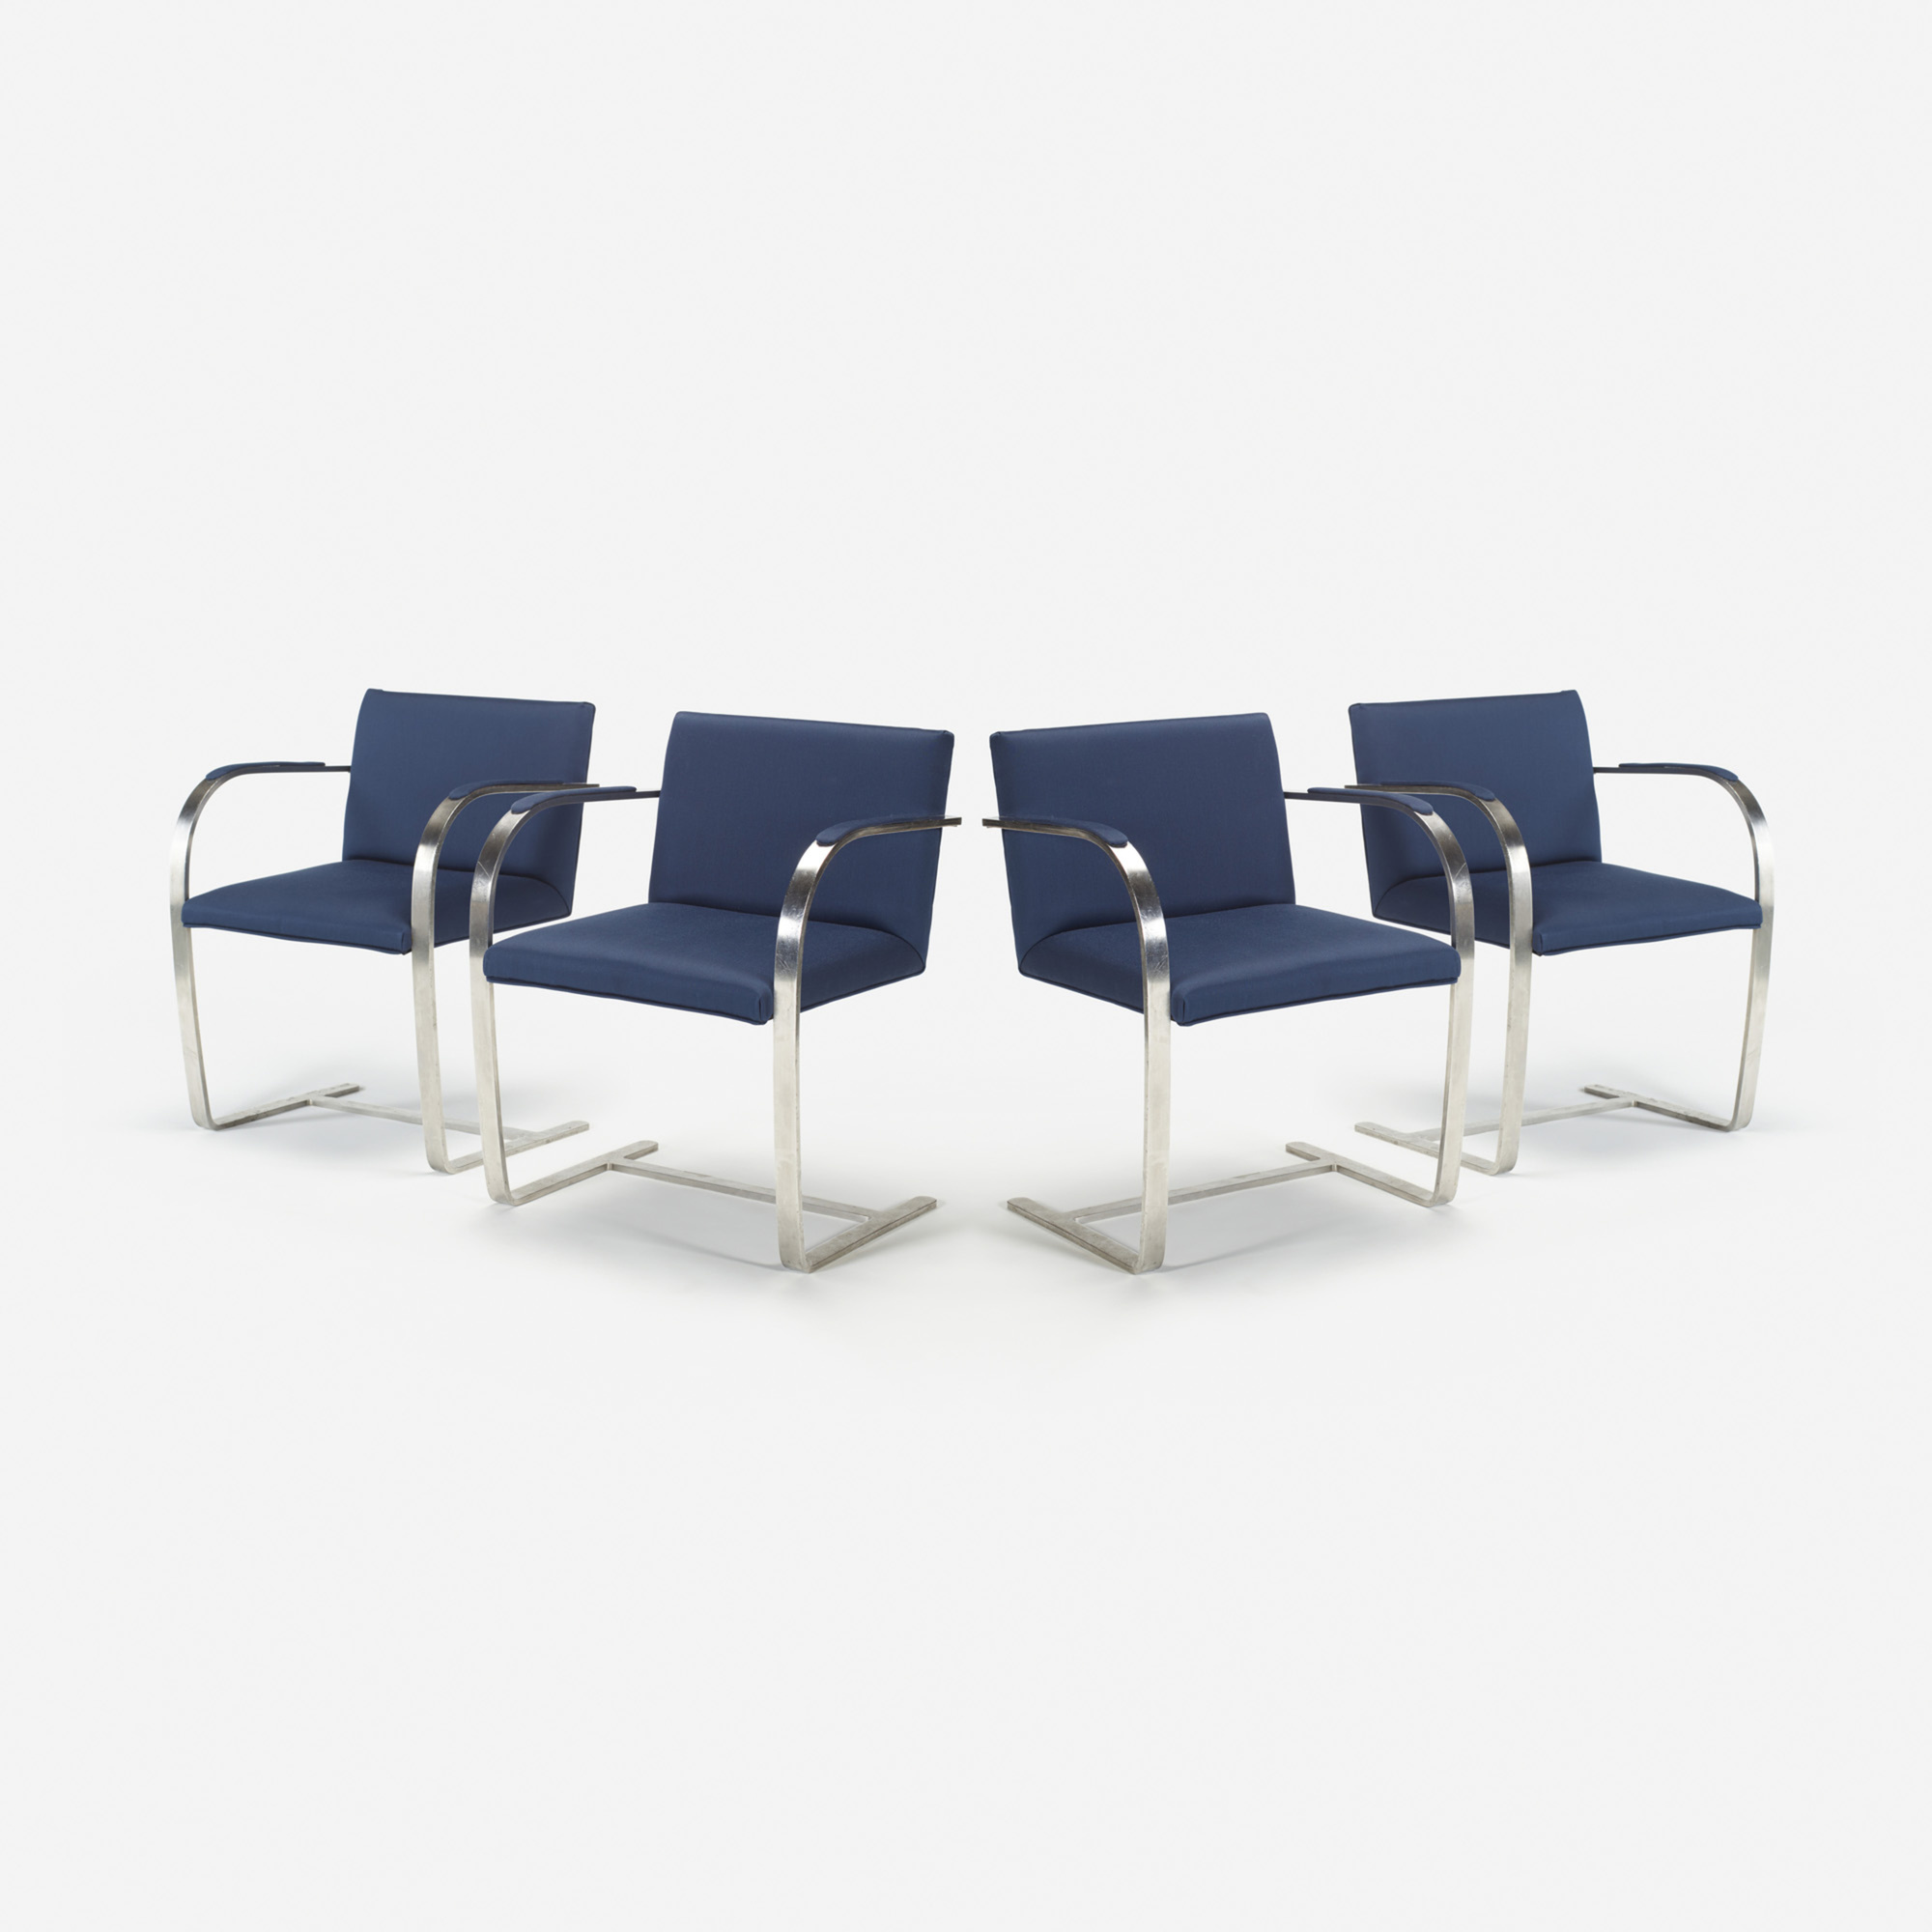 207: Ludwig Mies van der Rohe / Brno chairs from The Four Seasons, set of four (1 of 1)